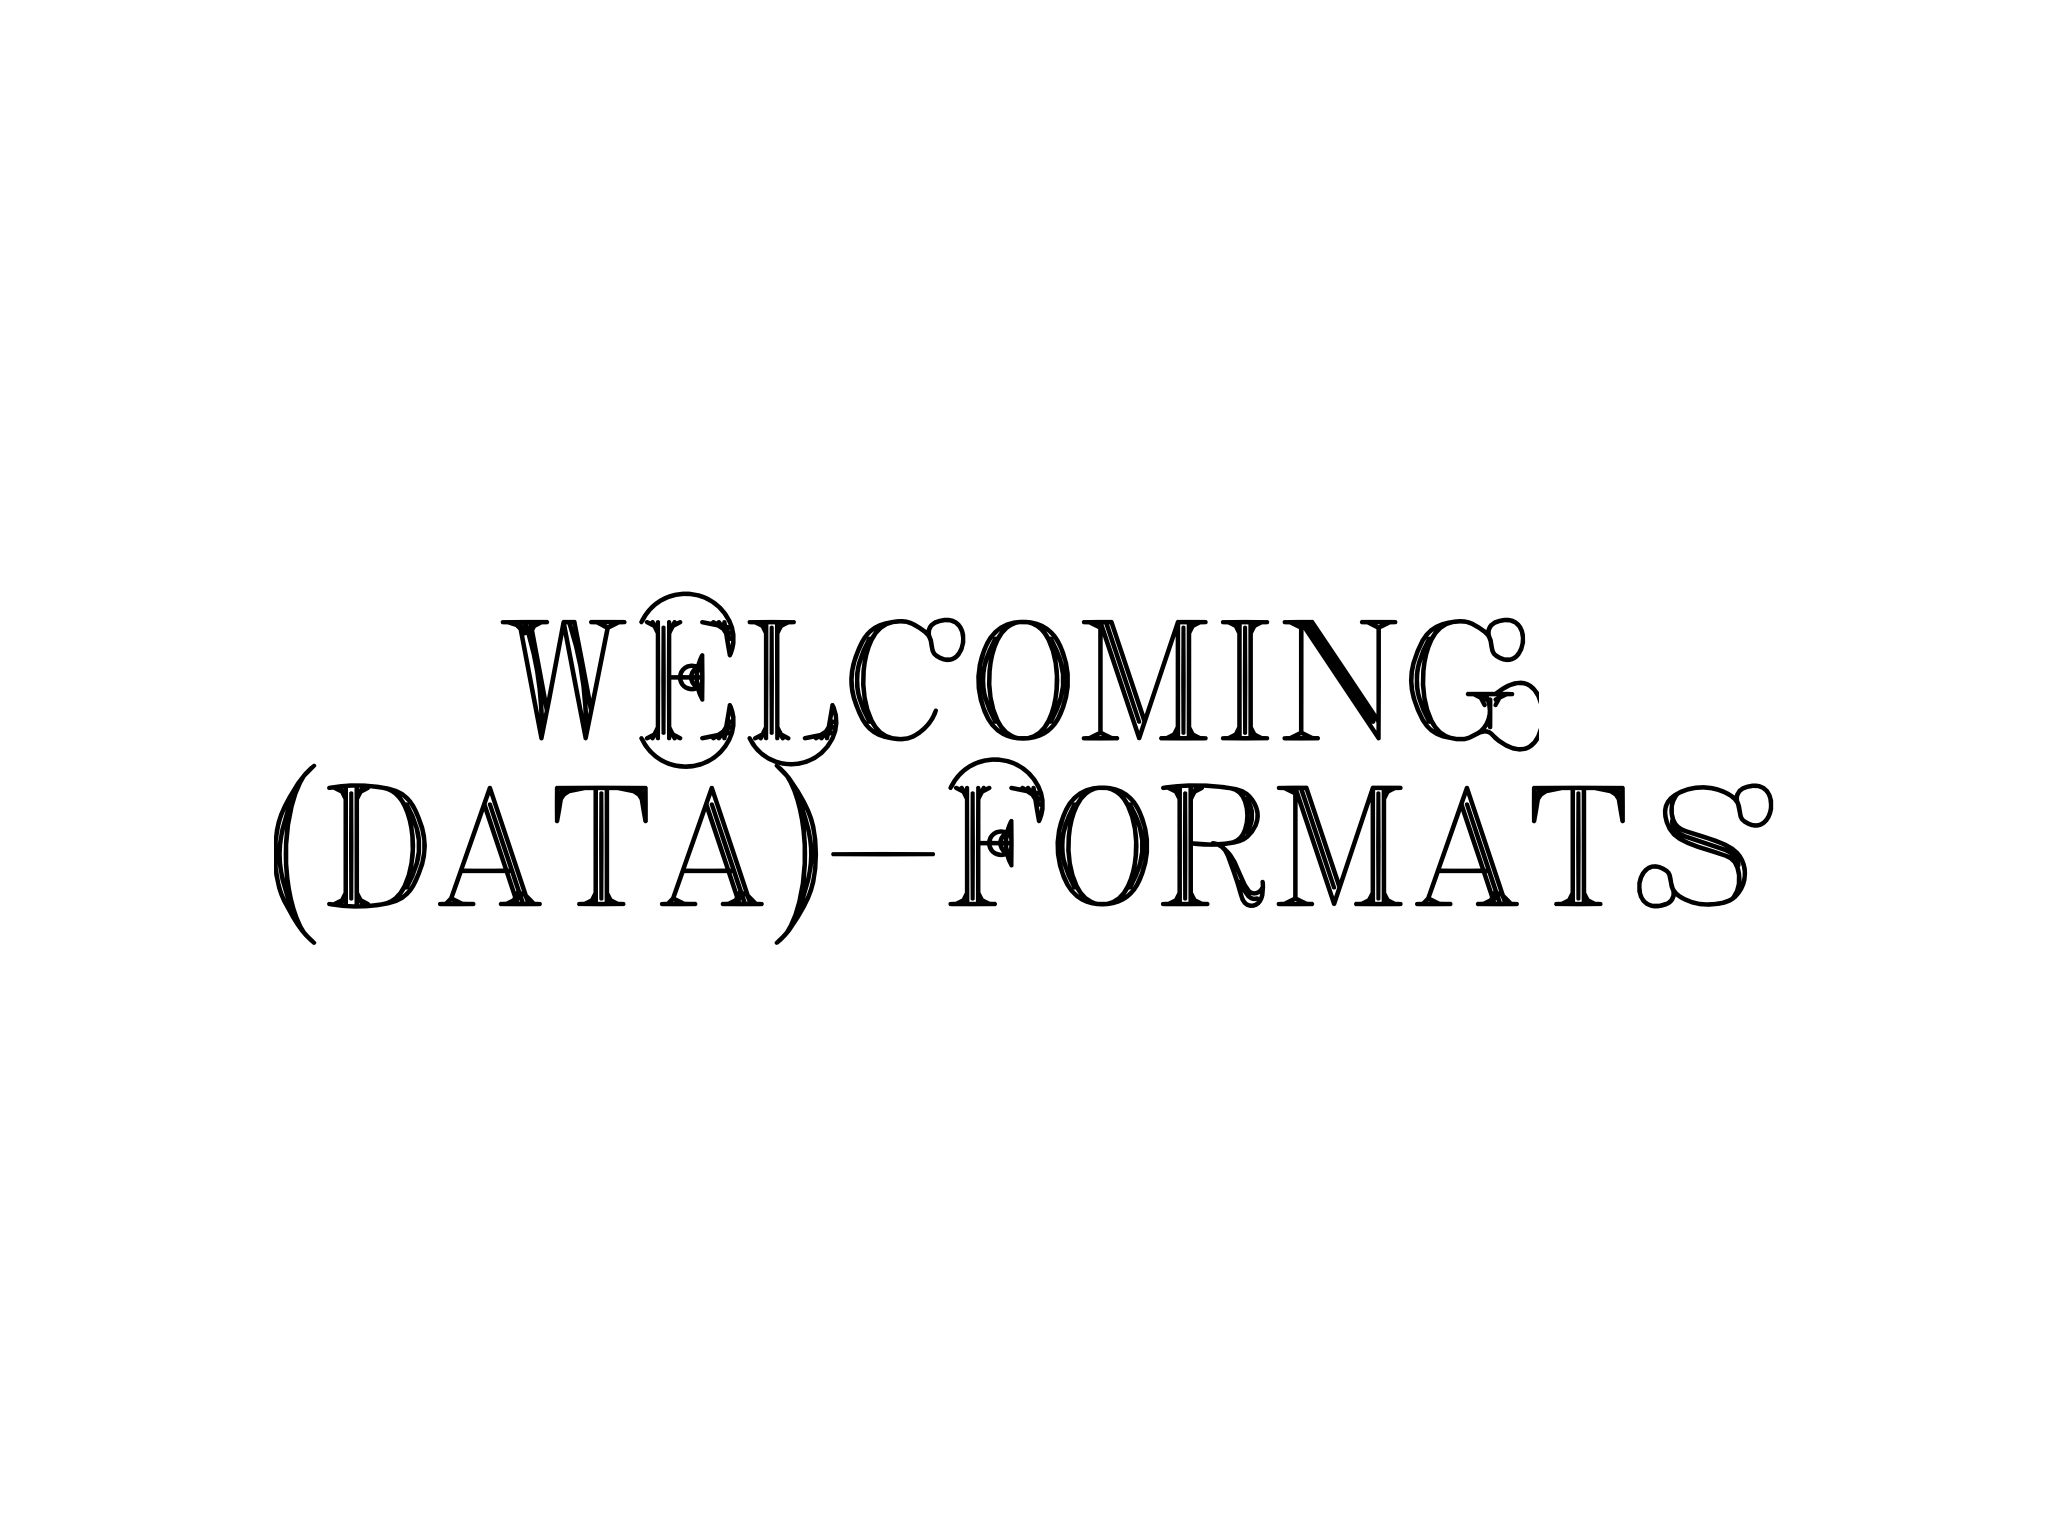 content/images/uploads/txt-welcoming-formats.png